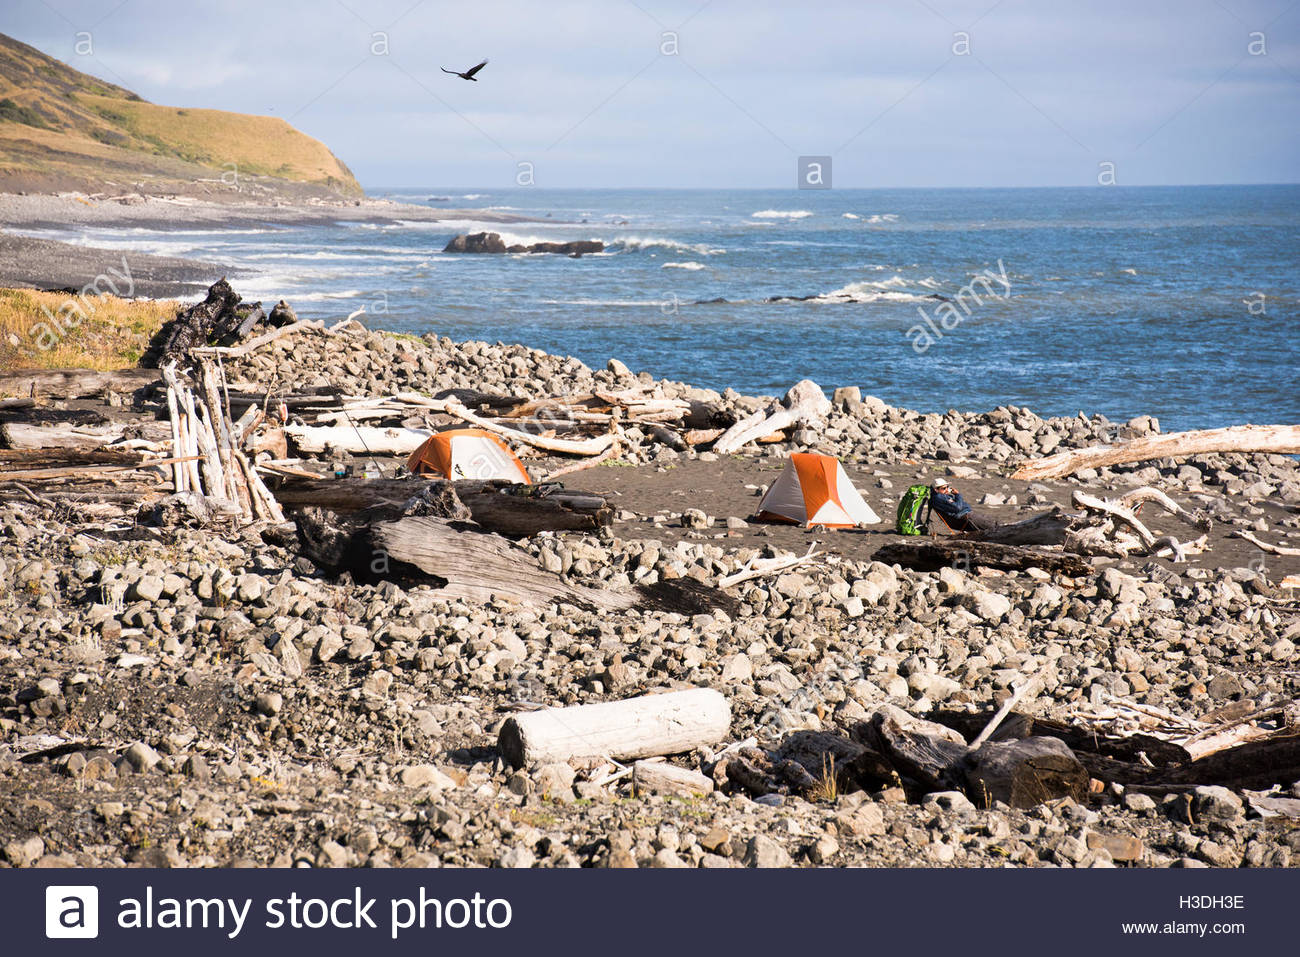 A campsite is seen on the ocean. - Stock Image